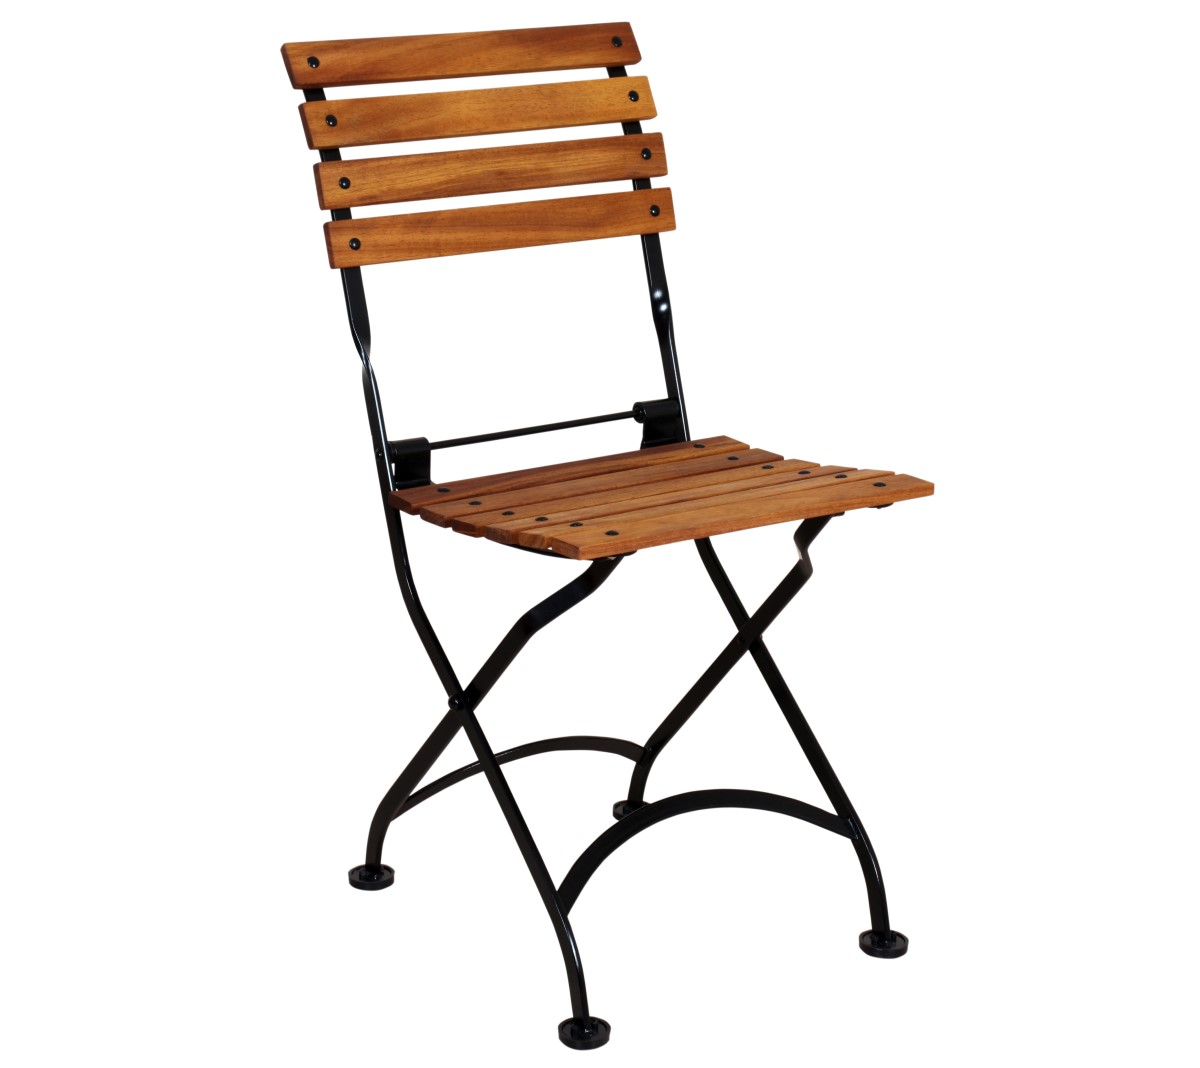 Veronique Chair - Teak Natural Finish with Black Frame - 5504T-BK